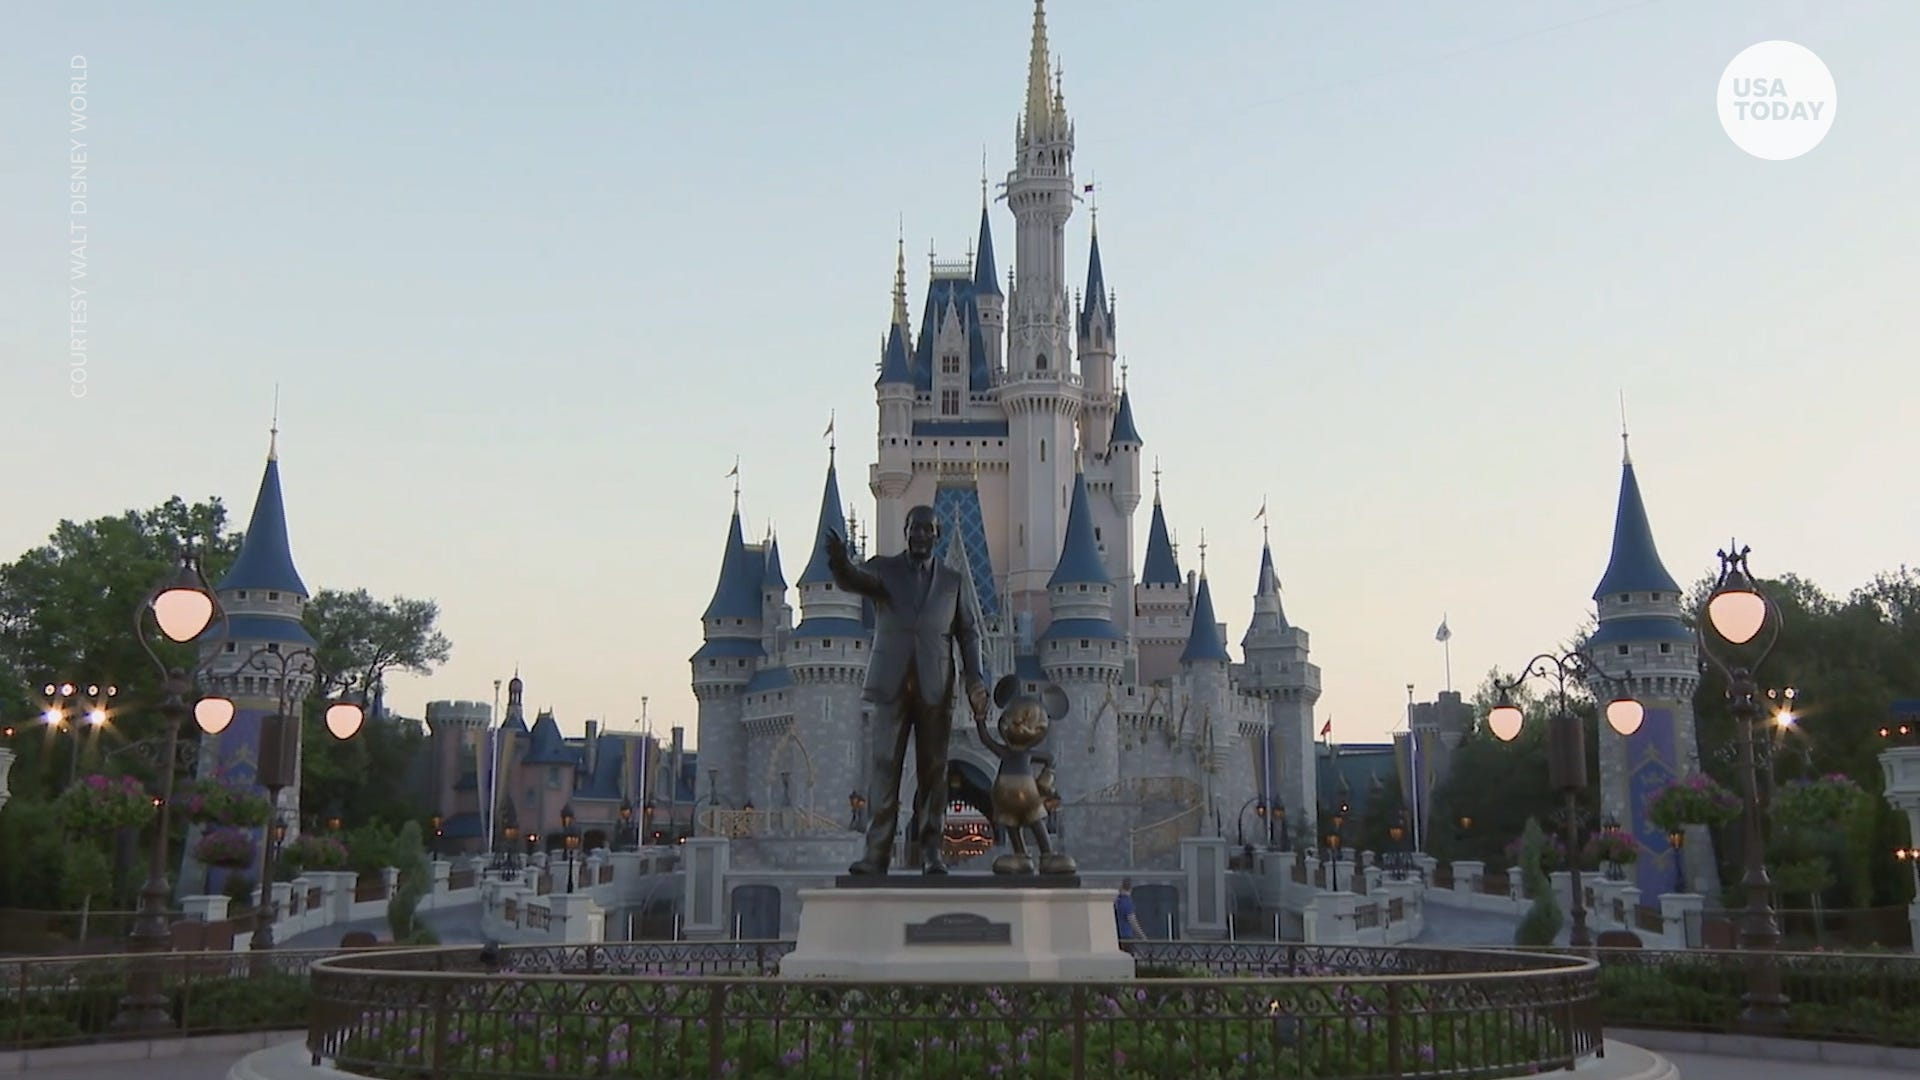 Disney World agrees to onsite COVID-19 testing for cast members, ends impasse with actors  union